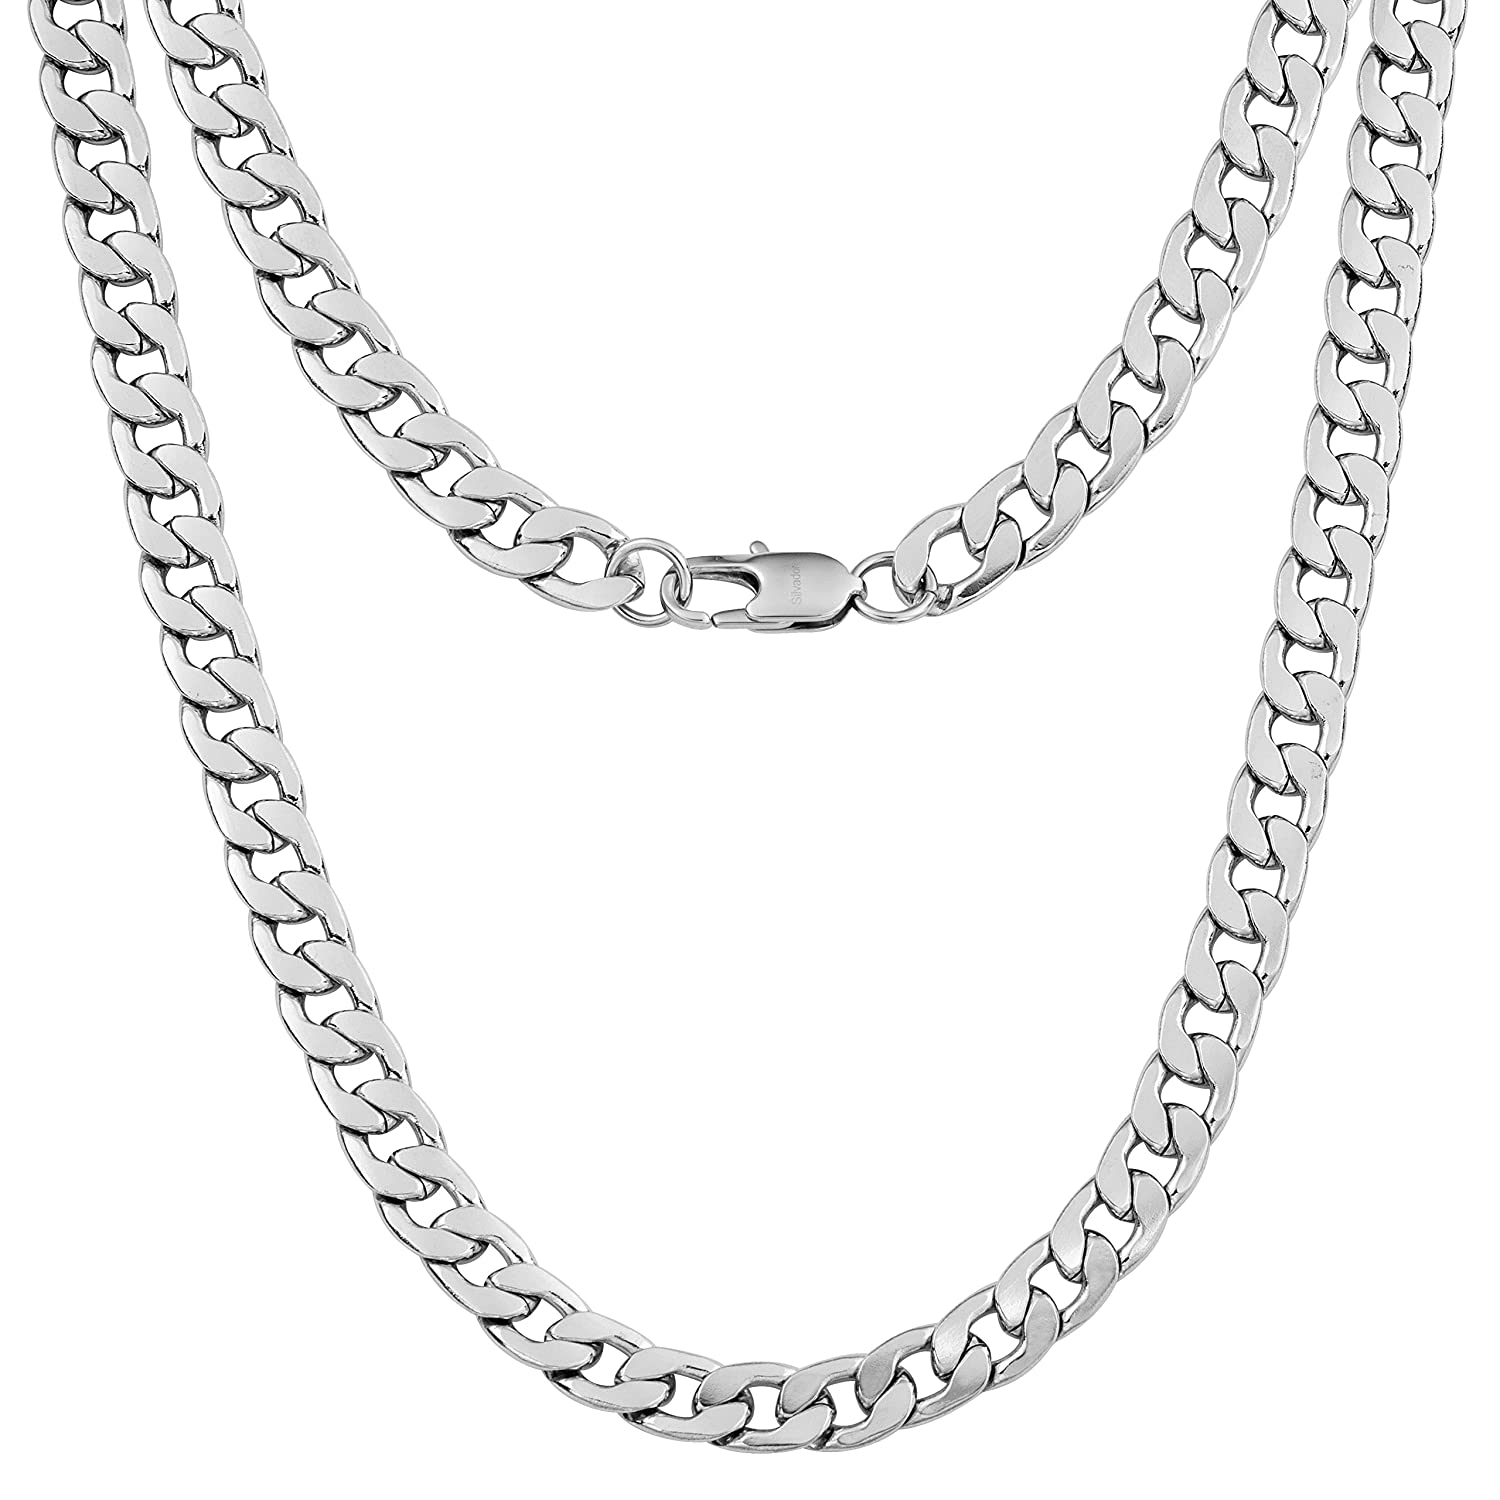 69103bce419 Silvadore 9mm Curb Mens Necklace - Silver Chain Flat Cuban Stainless Steel  Jewelry - Neck Link Chains for Men Man Boys Male Heavy Military - 18 20 22  24 ...